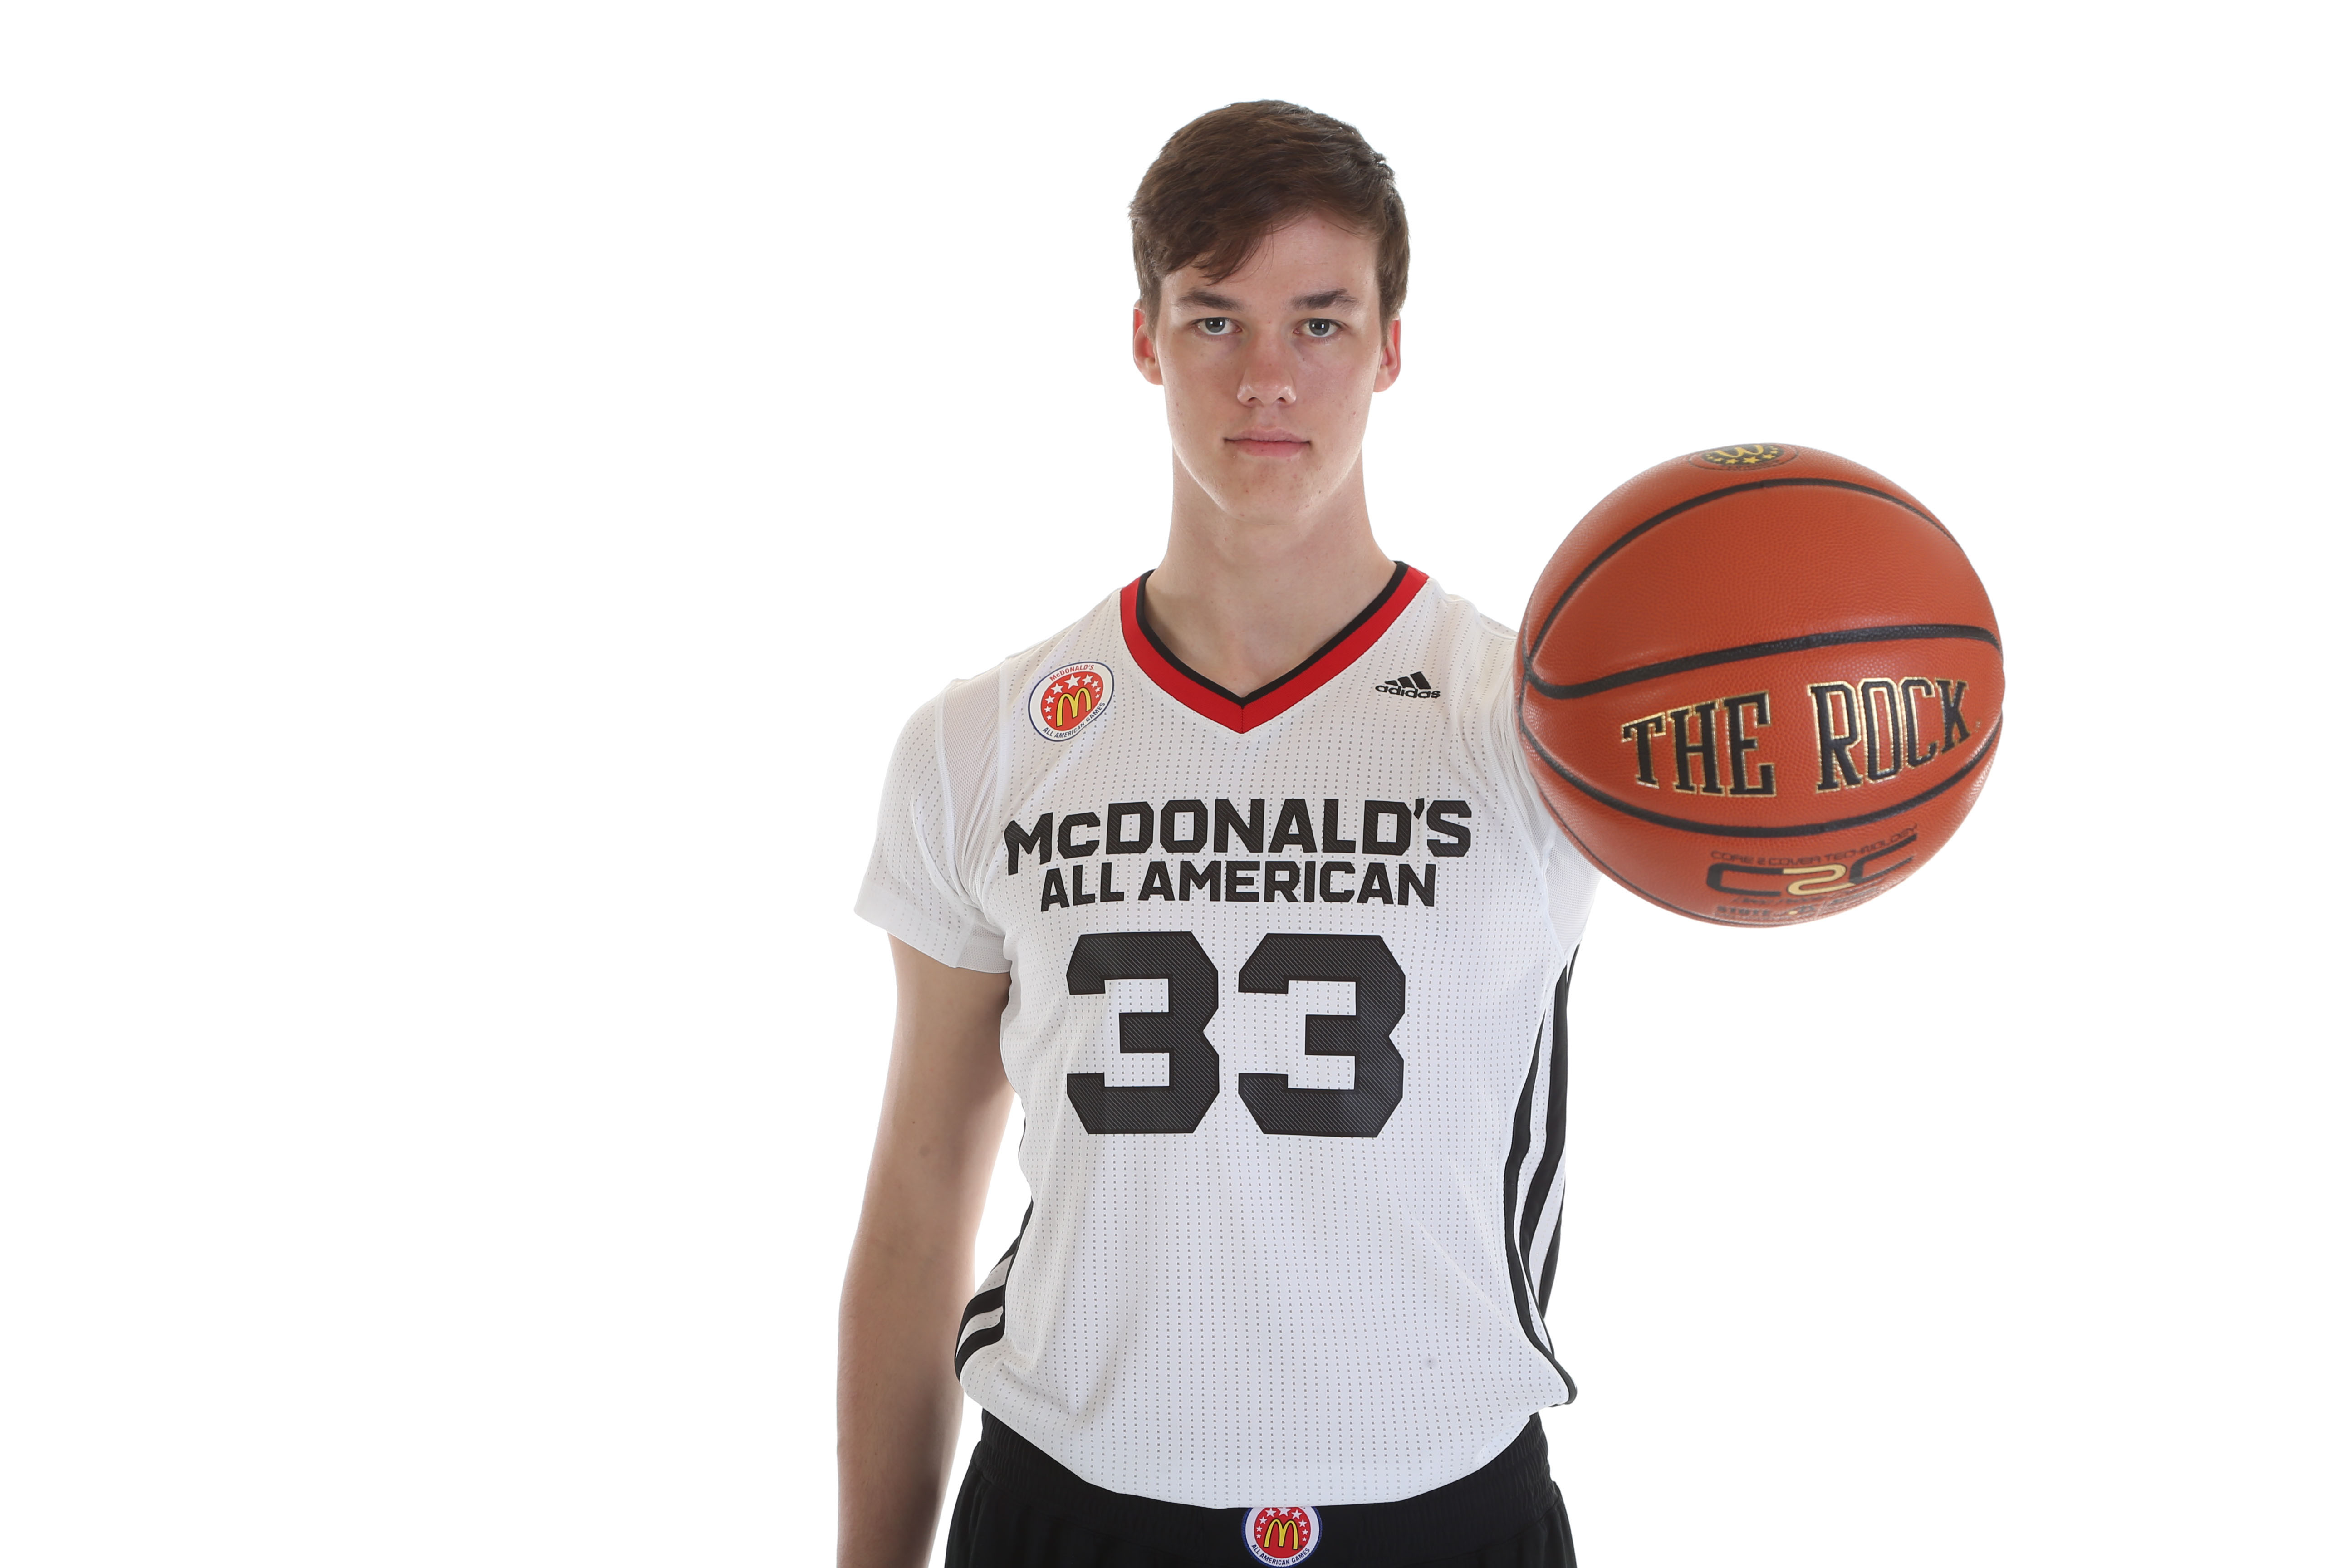 Stephen Zimmerman is enjoying him time at the McDonald's All American Game (Photo: Brian Spurlock, USA TODAY Sports)